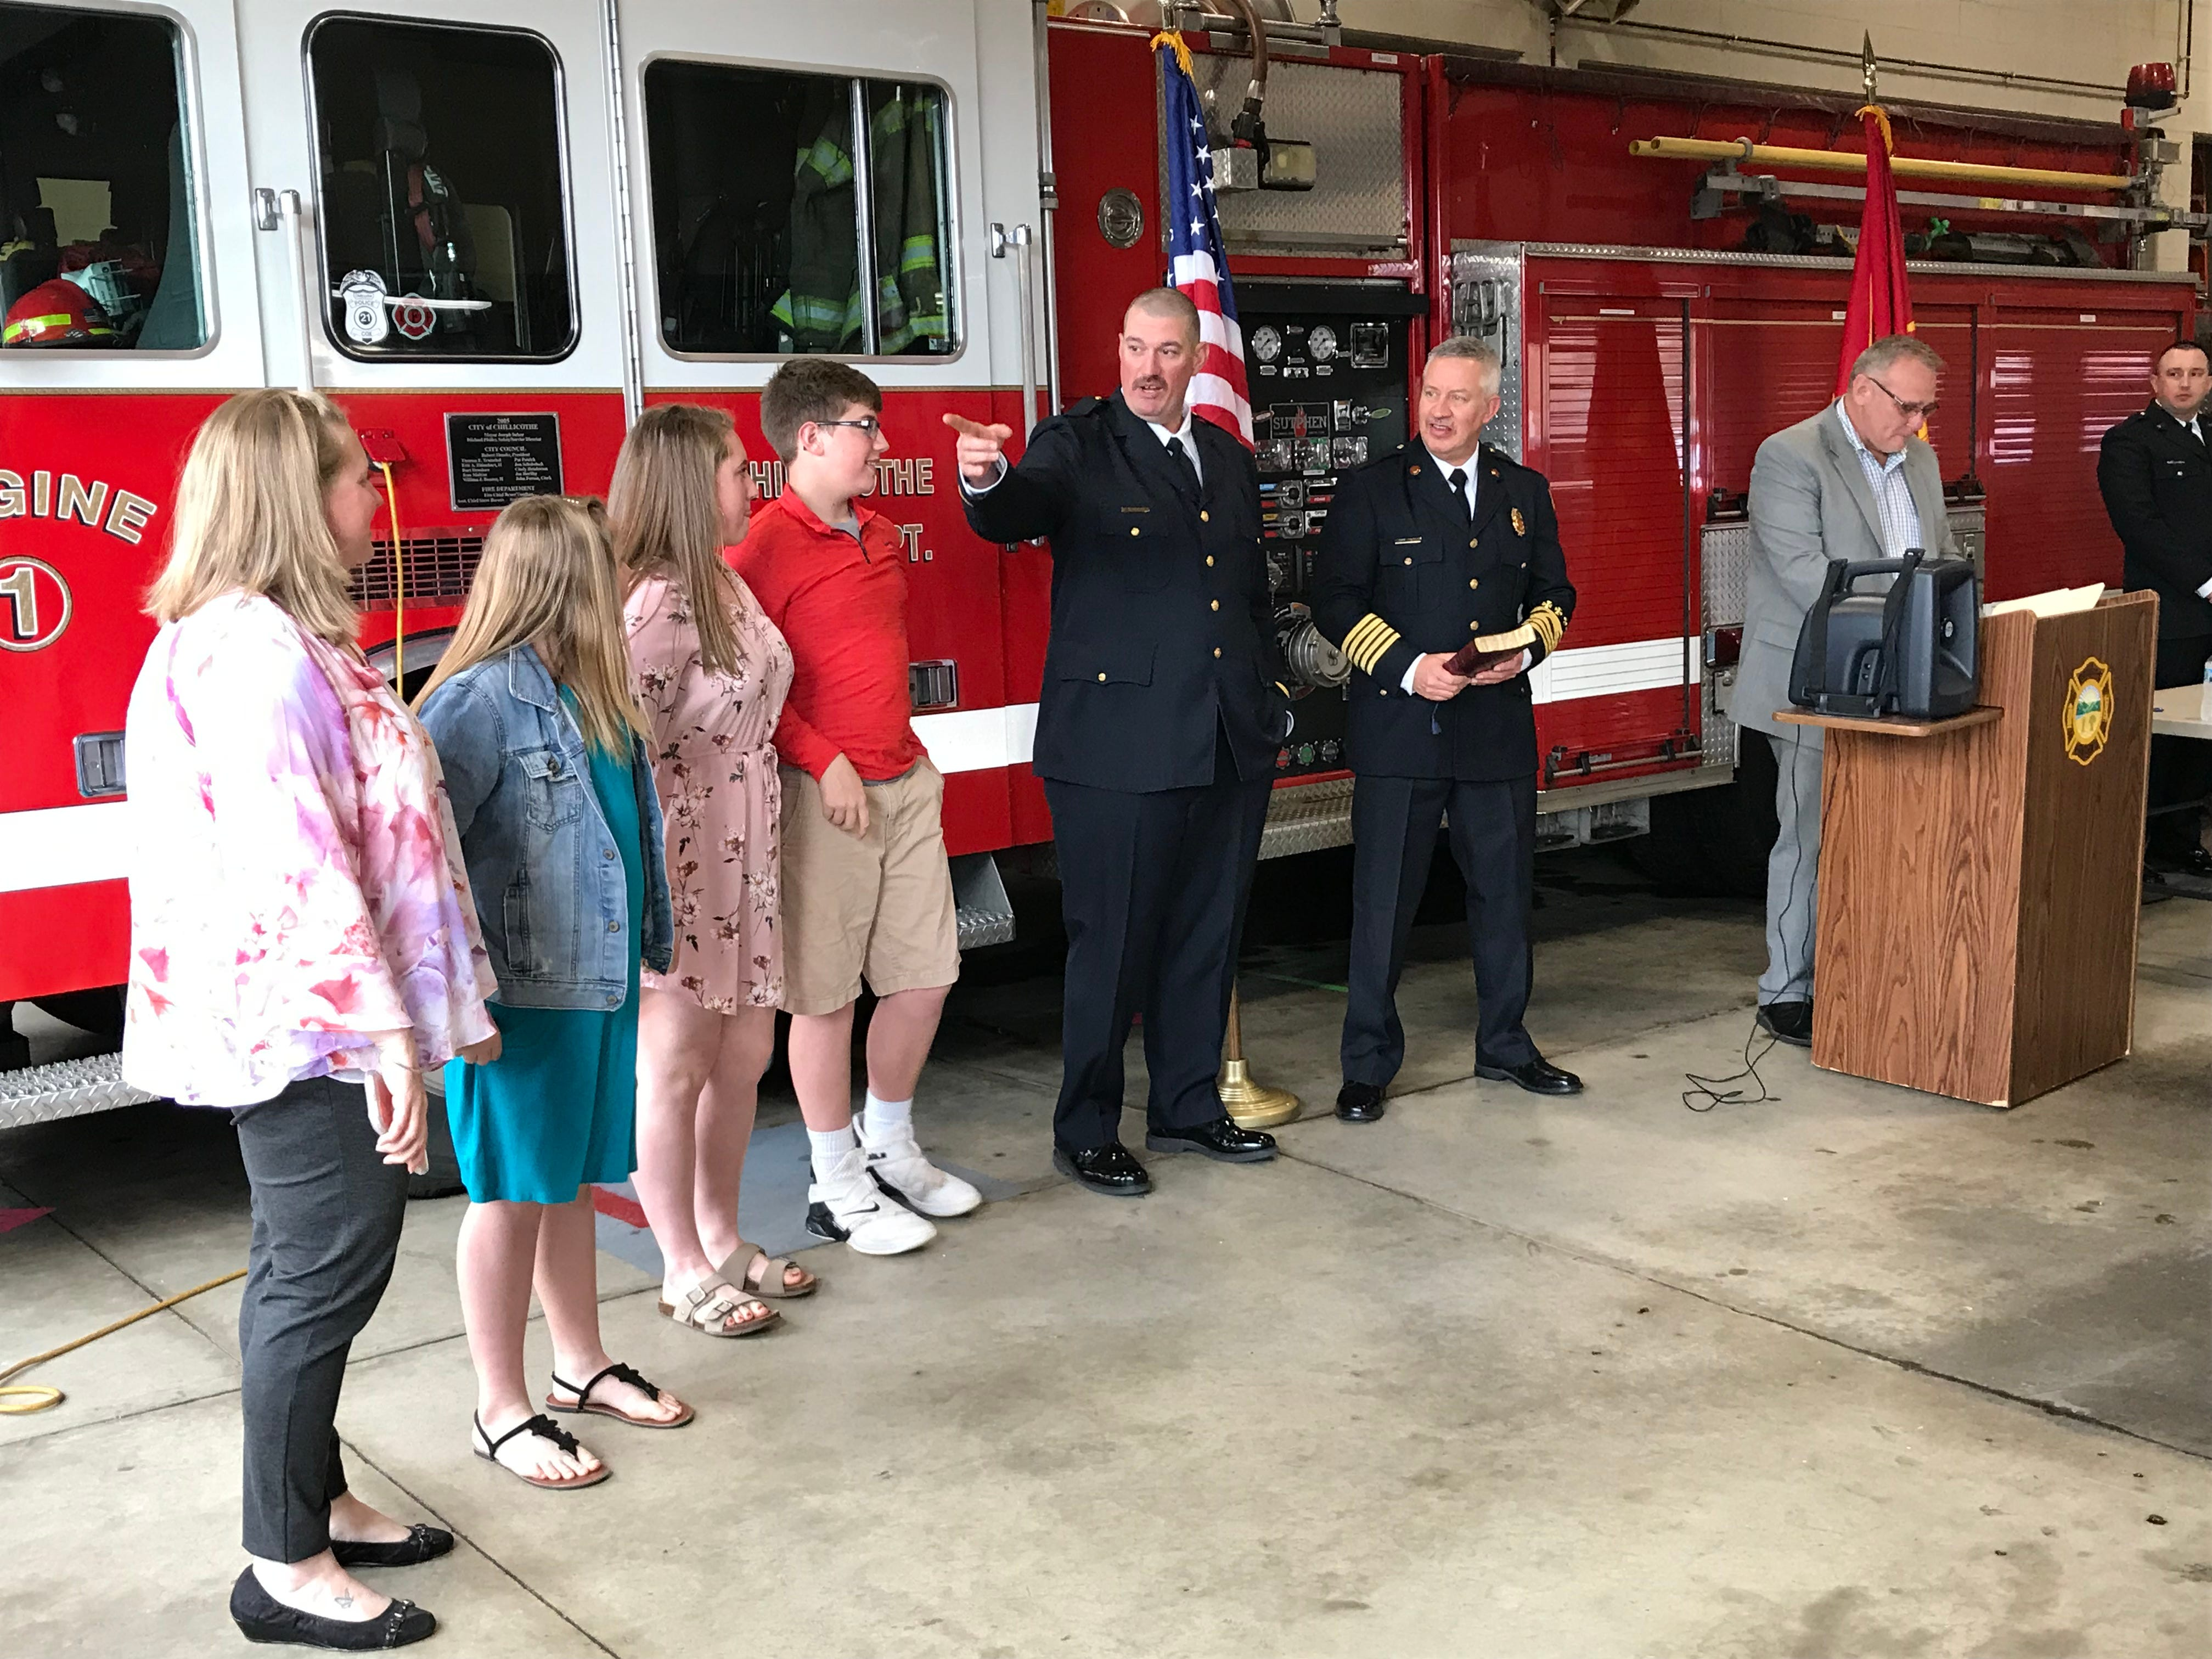 New Chillicothe Fire Capt. Ryan Wade introduces his family before being sworn in during a ceremony at Station 1 on Friday, April 26, 2019.